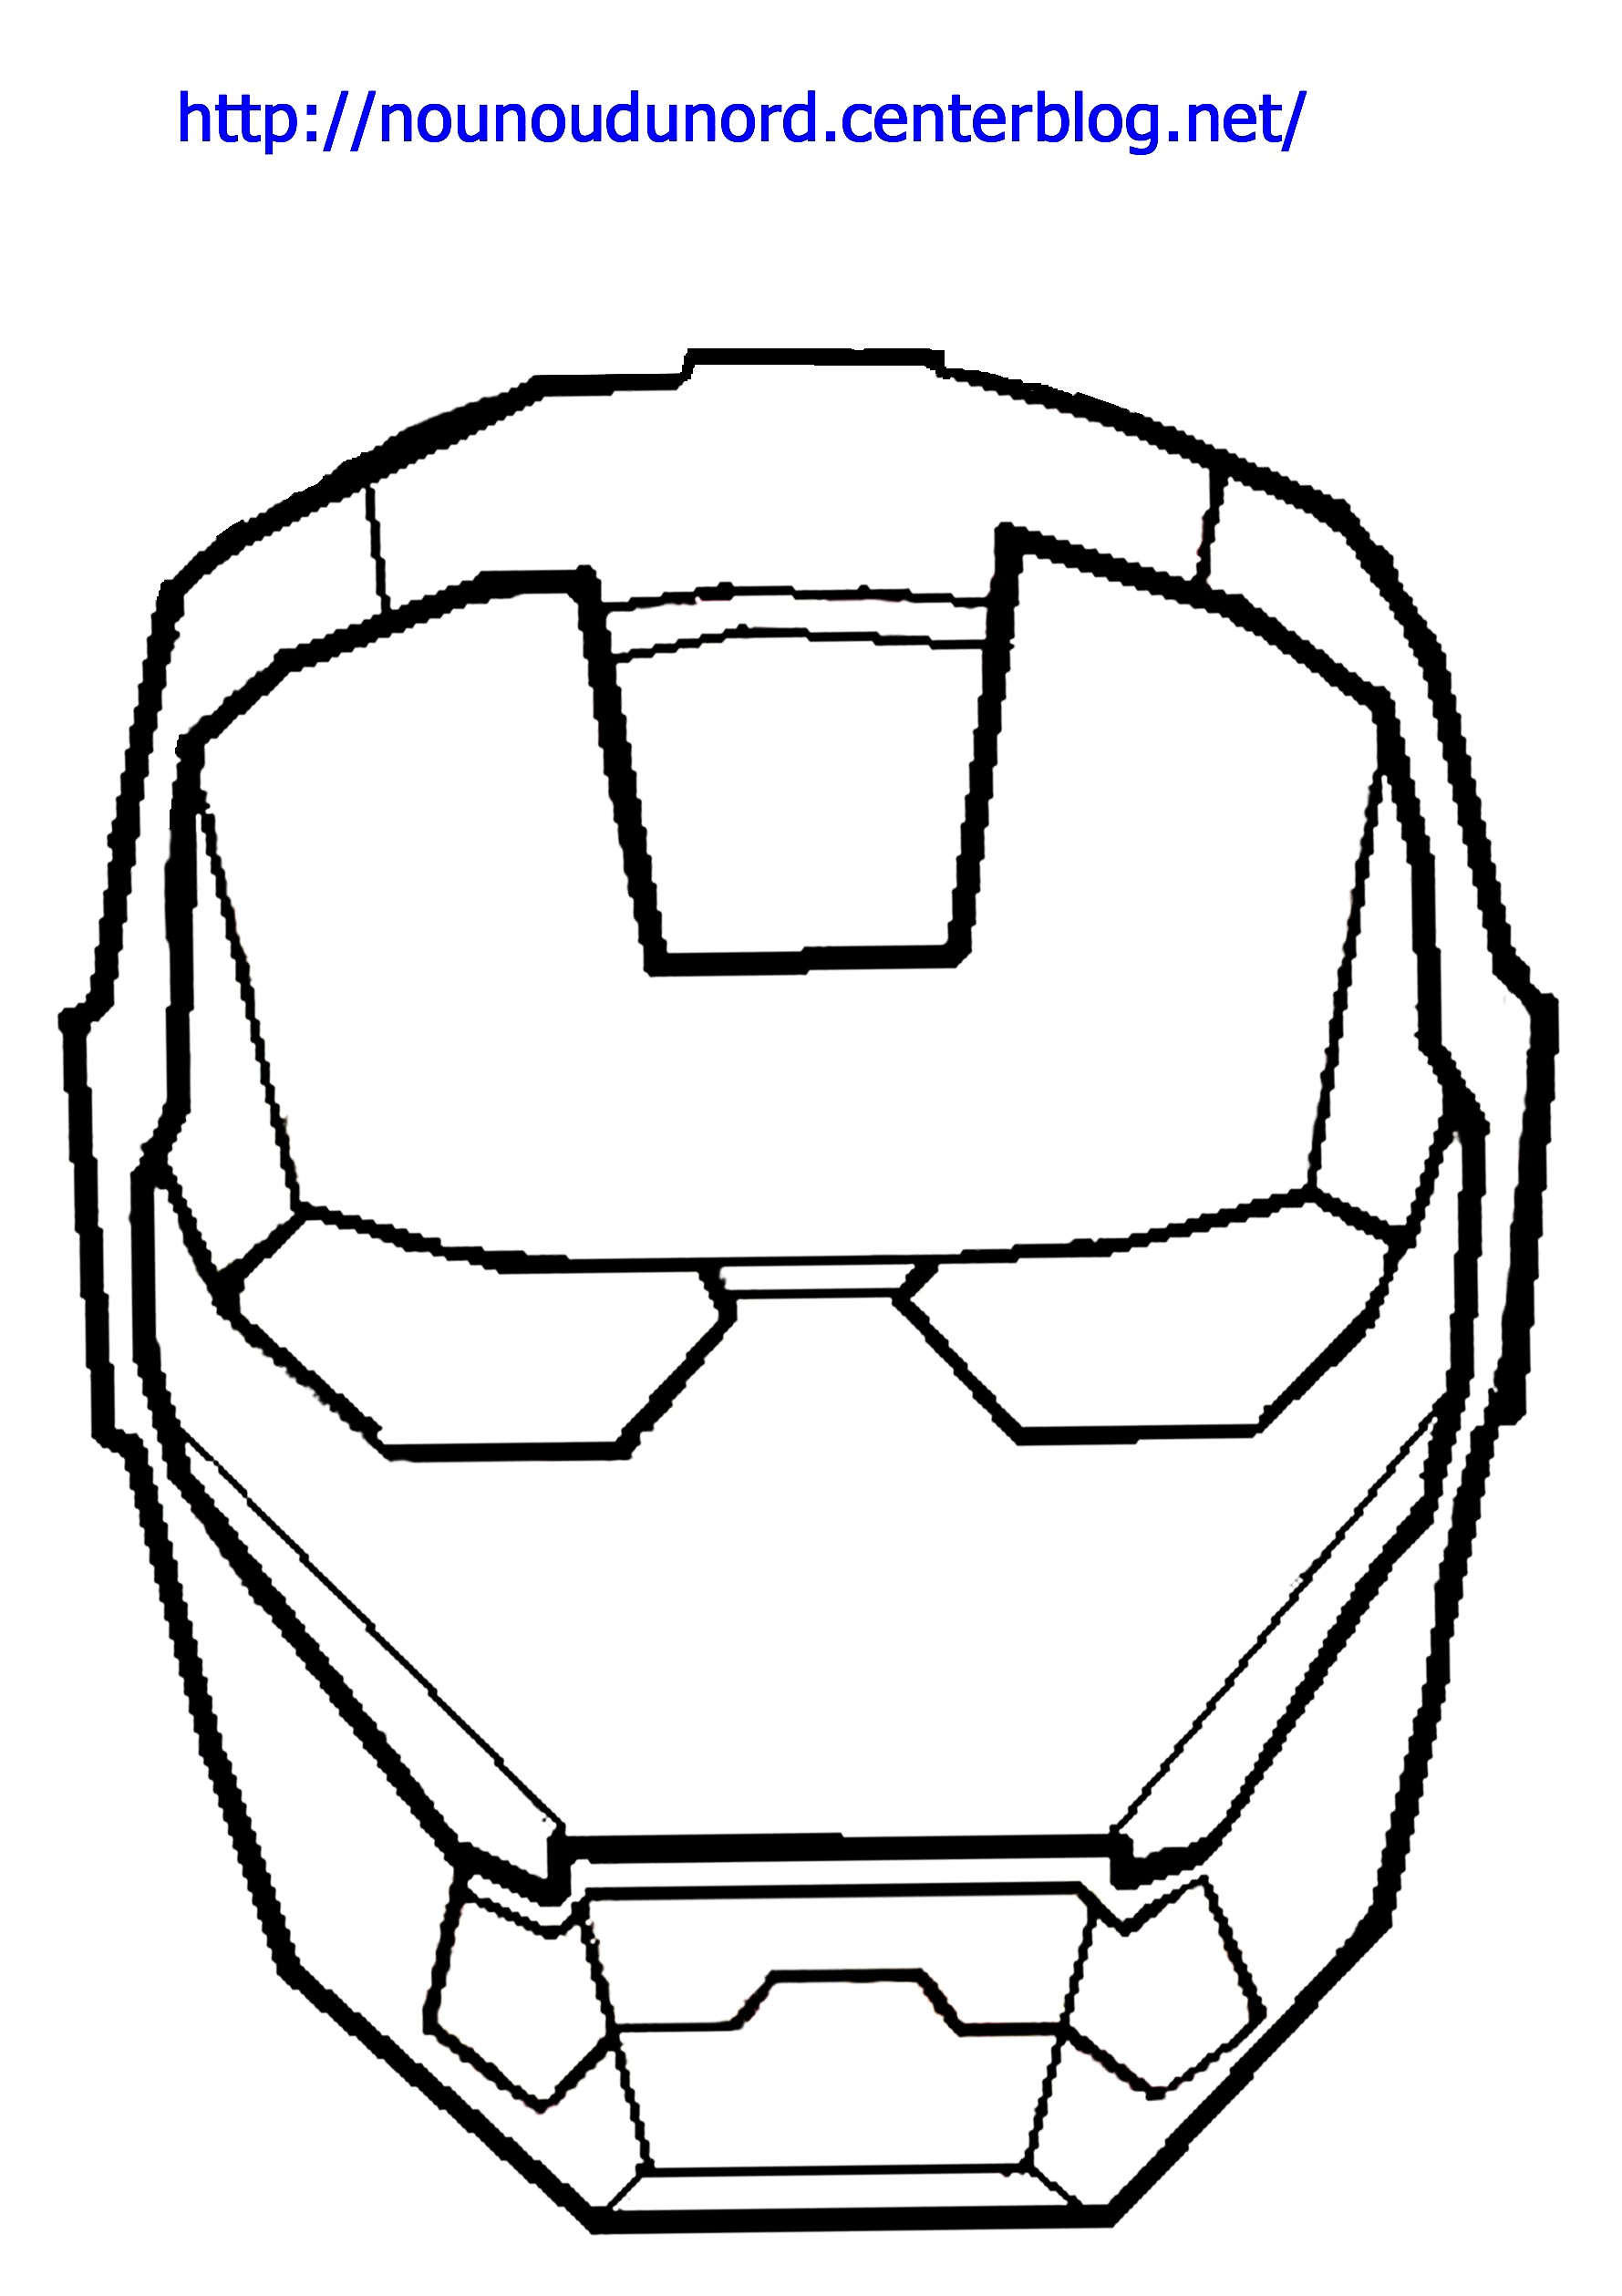 Coloriage iron man 3 en ligne - Dessin a imprimer de spiderman ...